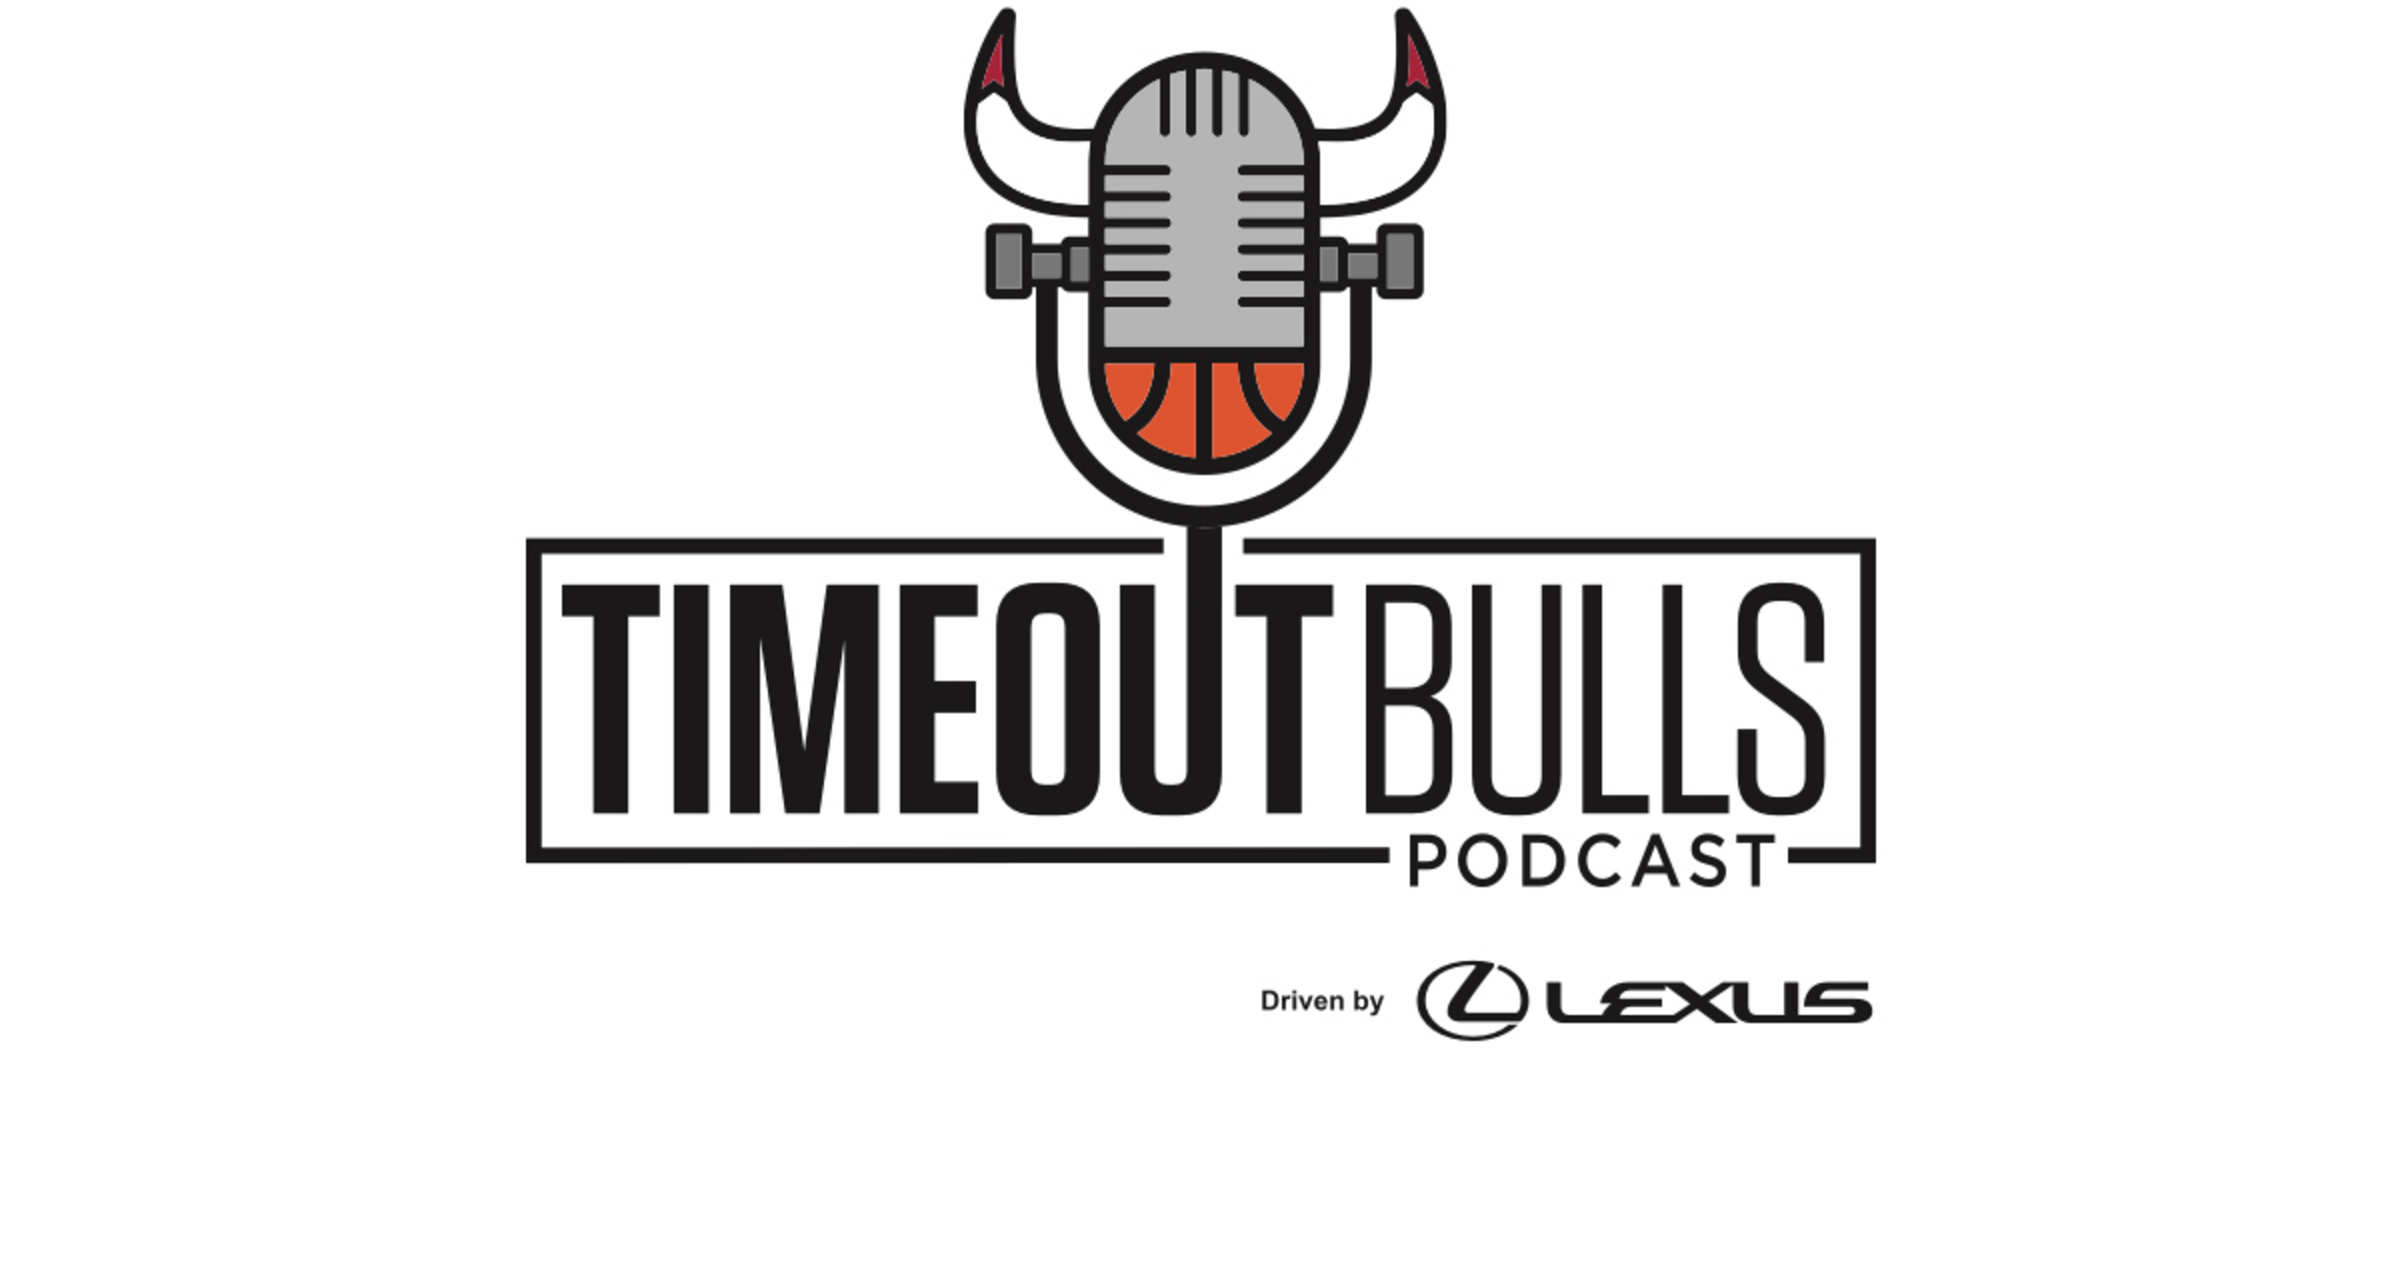 Timeout Bulls, driven by Lexus